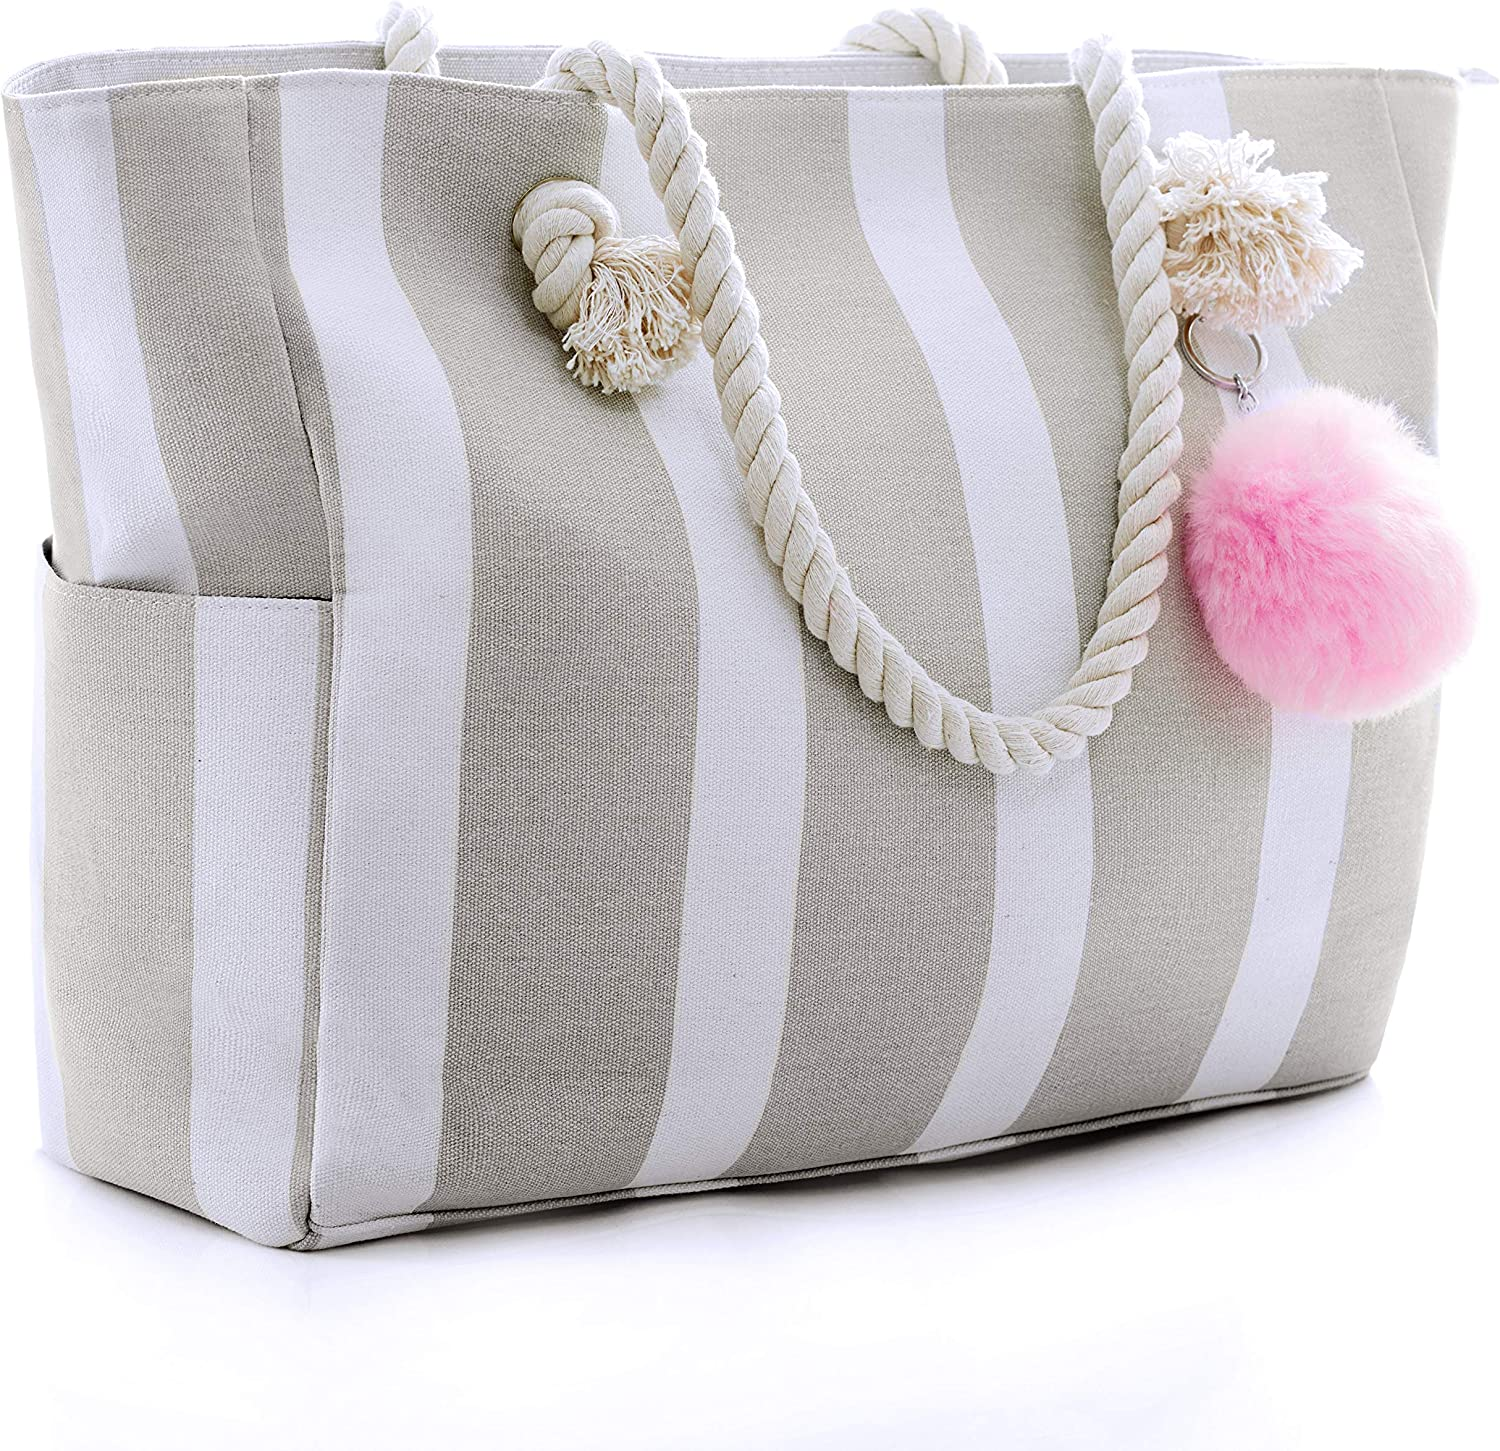 White cotton with birds flowers. Summer bag with rope handles shopping tote beach bag